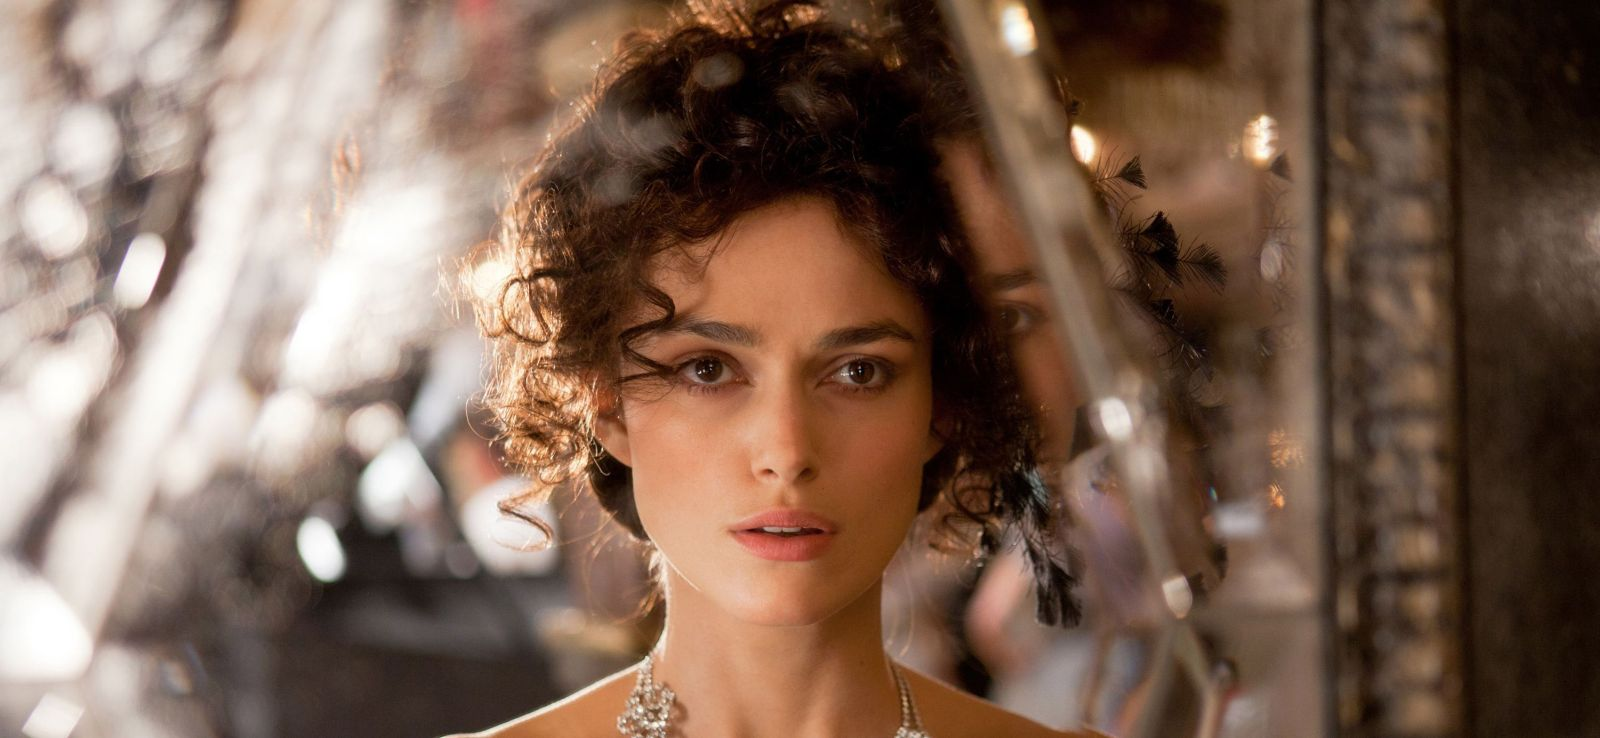 Keira Knightley is the adulterous Anna Karenina in director Joe Wright